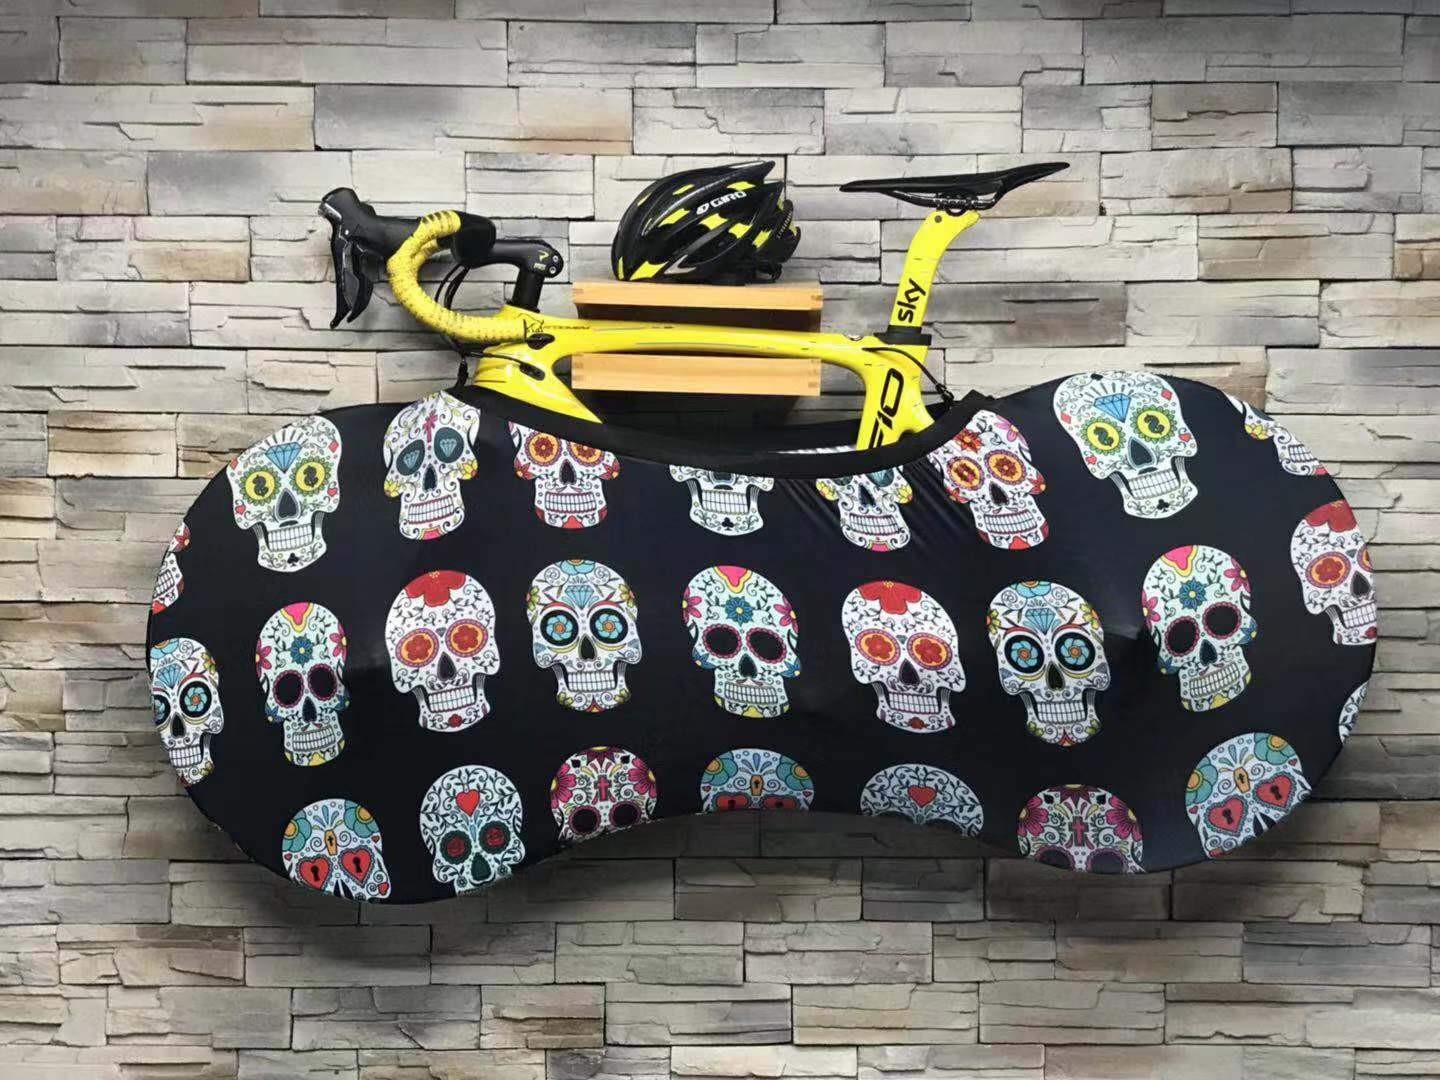 Bike Protector MTB Road Bicycle Cover Anti-dust Wheels Frame Cover Scratch-proof Storage Bag